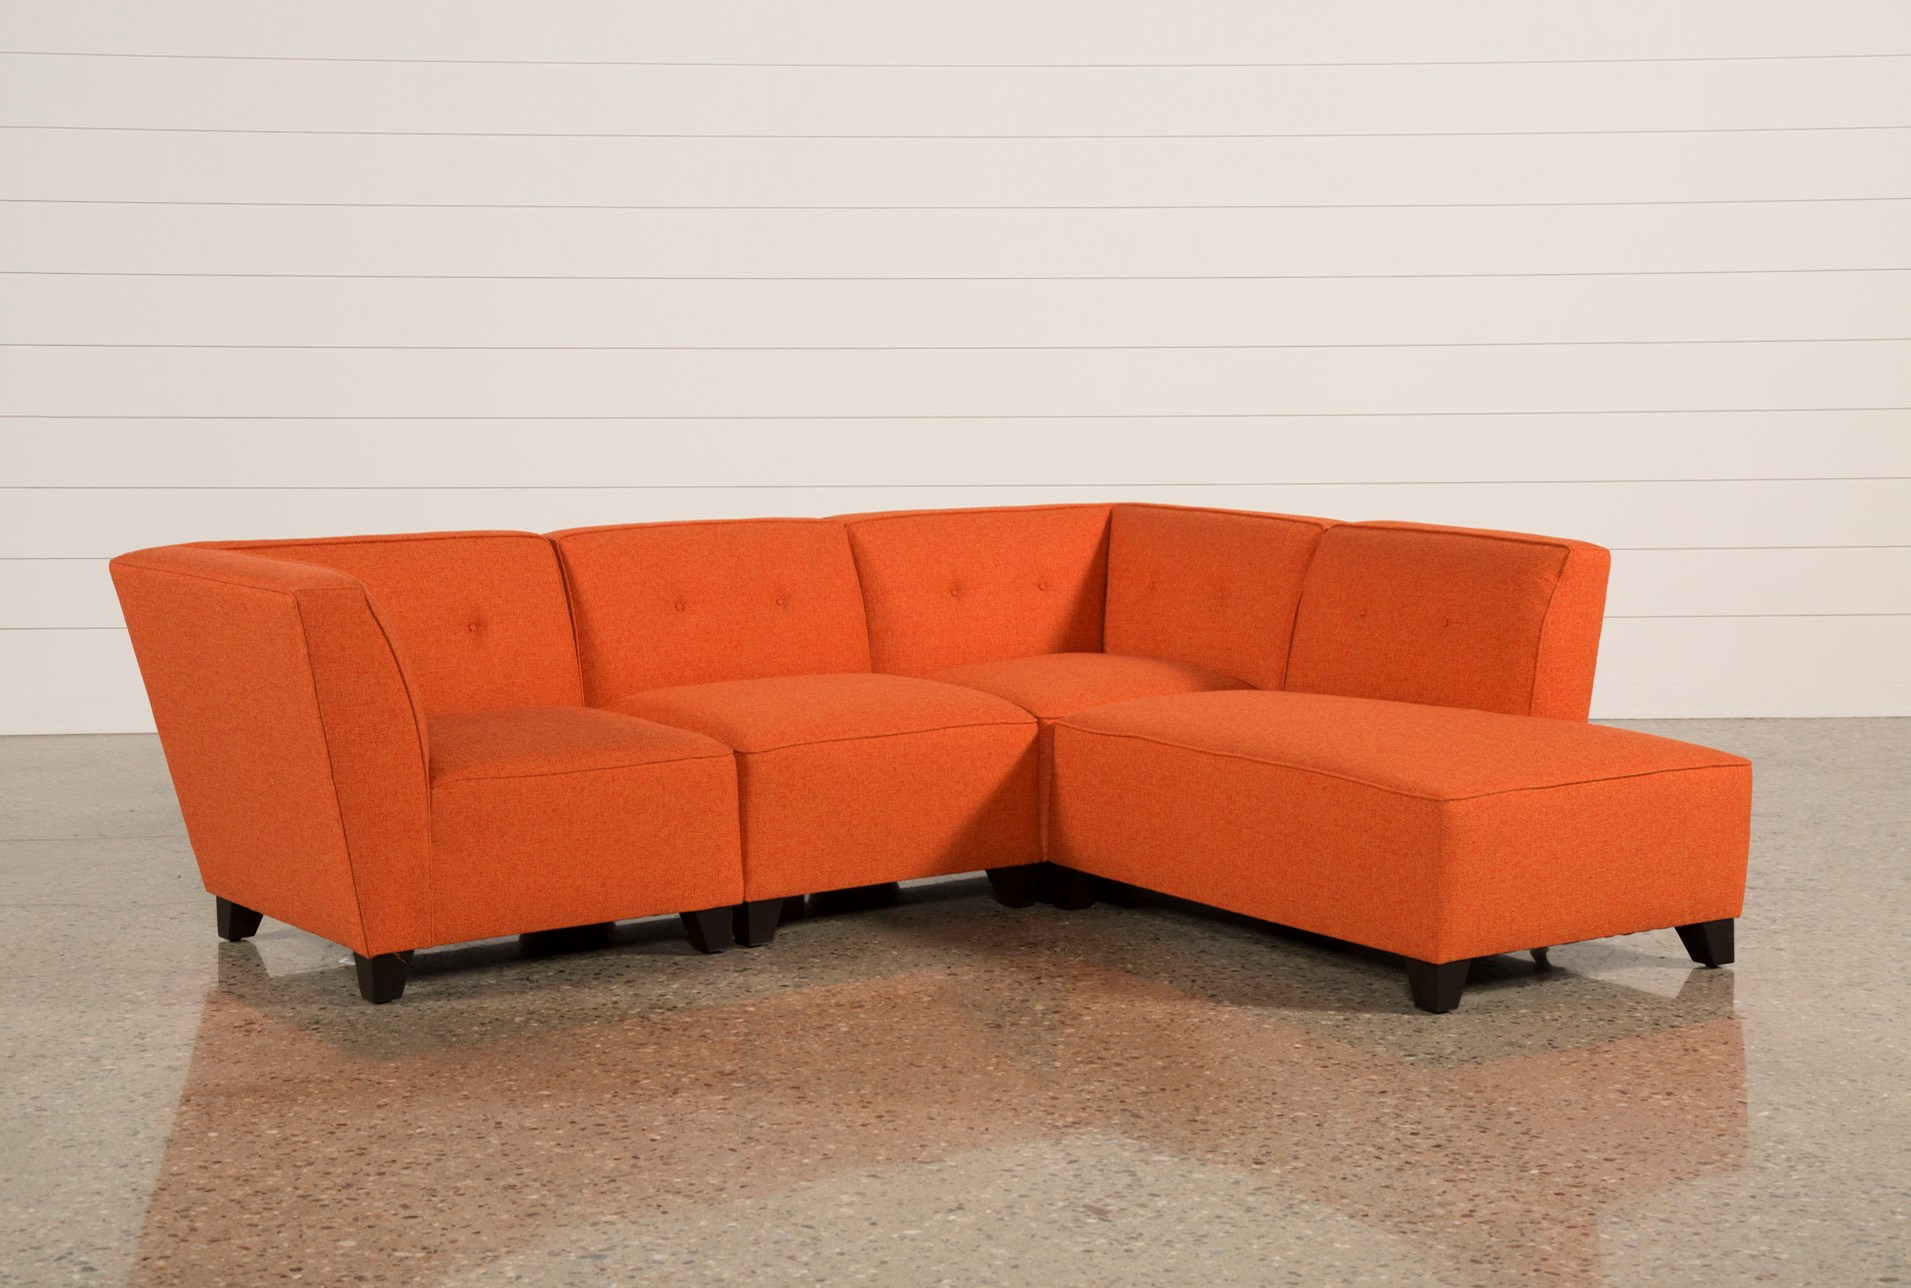 home century piece orange free knight fabric mid set sofa by modern garden sawyer product today sectional overstock shipping christopher